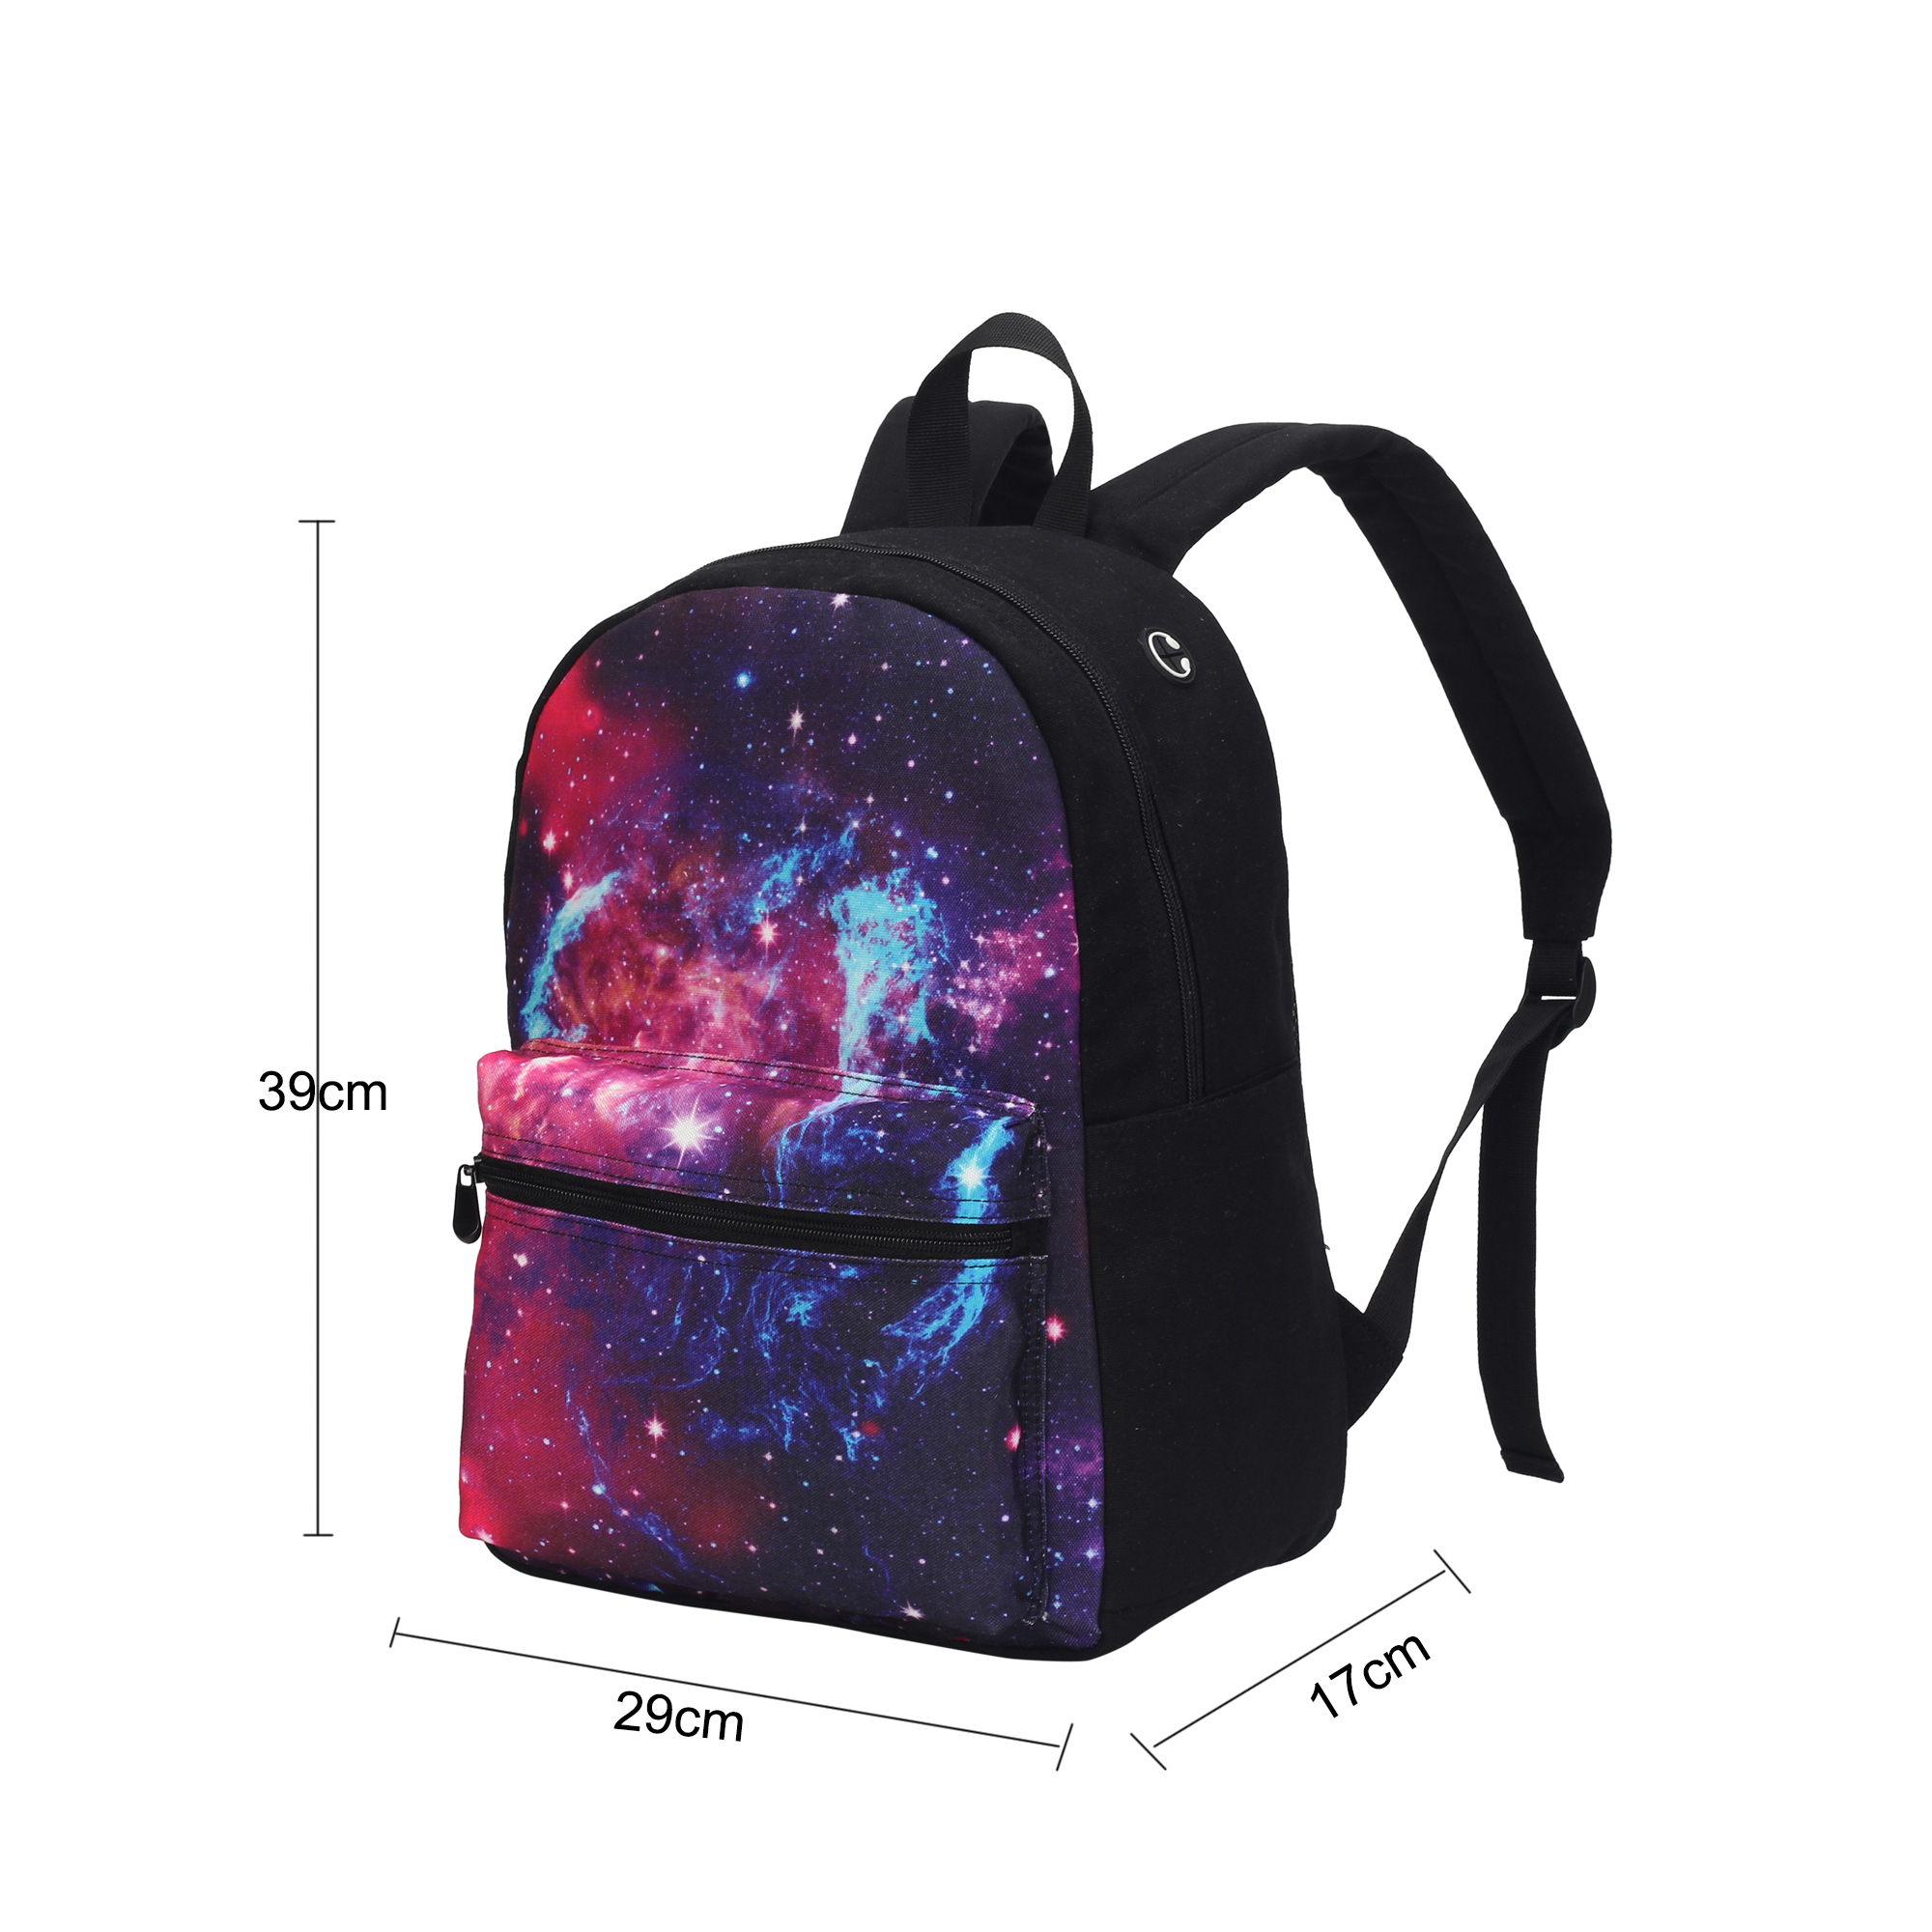 veevanv brand 2017 a dog s purpose book bags 3d prints backpack